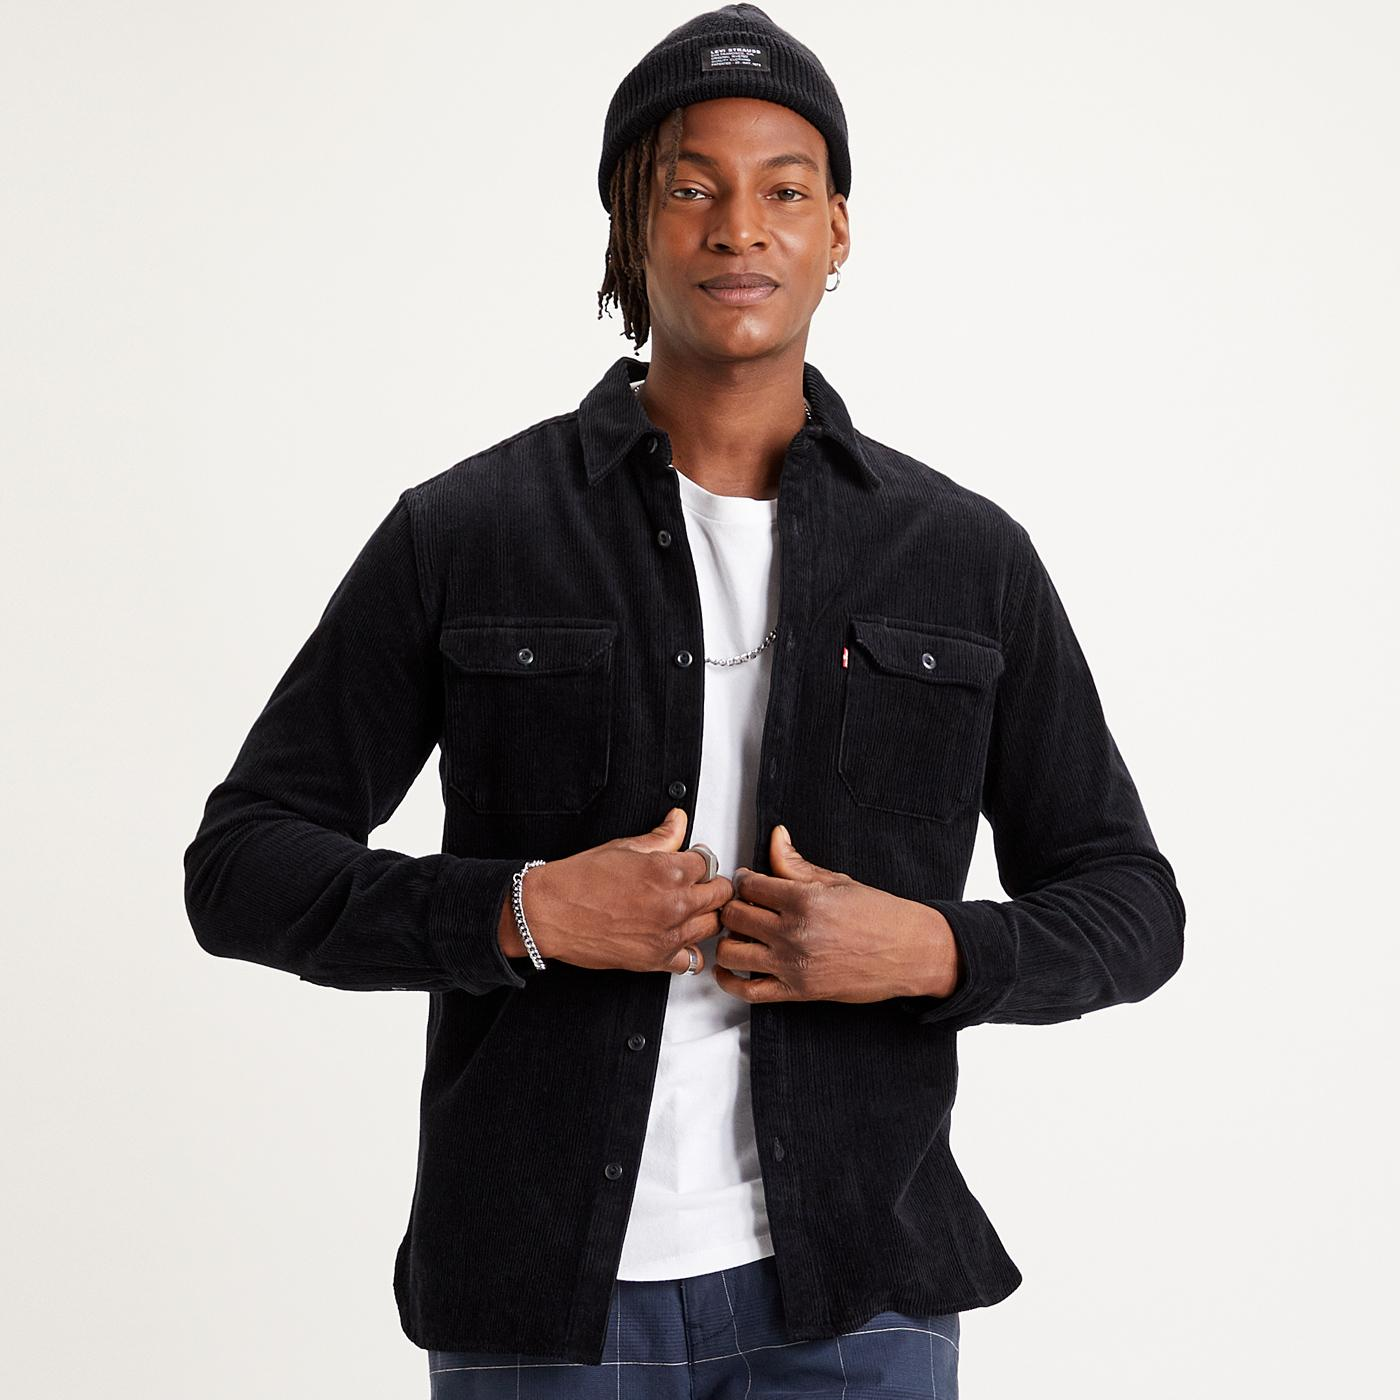 Jackson LEVI'S Retro Cord Worker Over Shirt (JB)